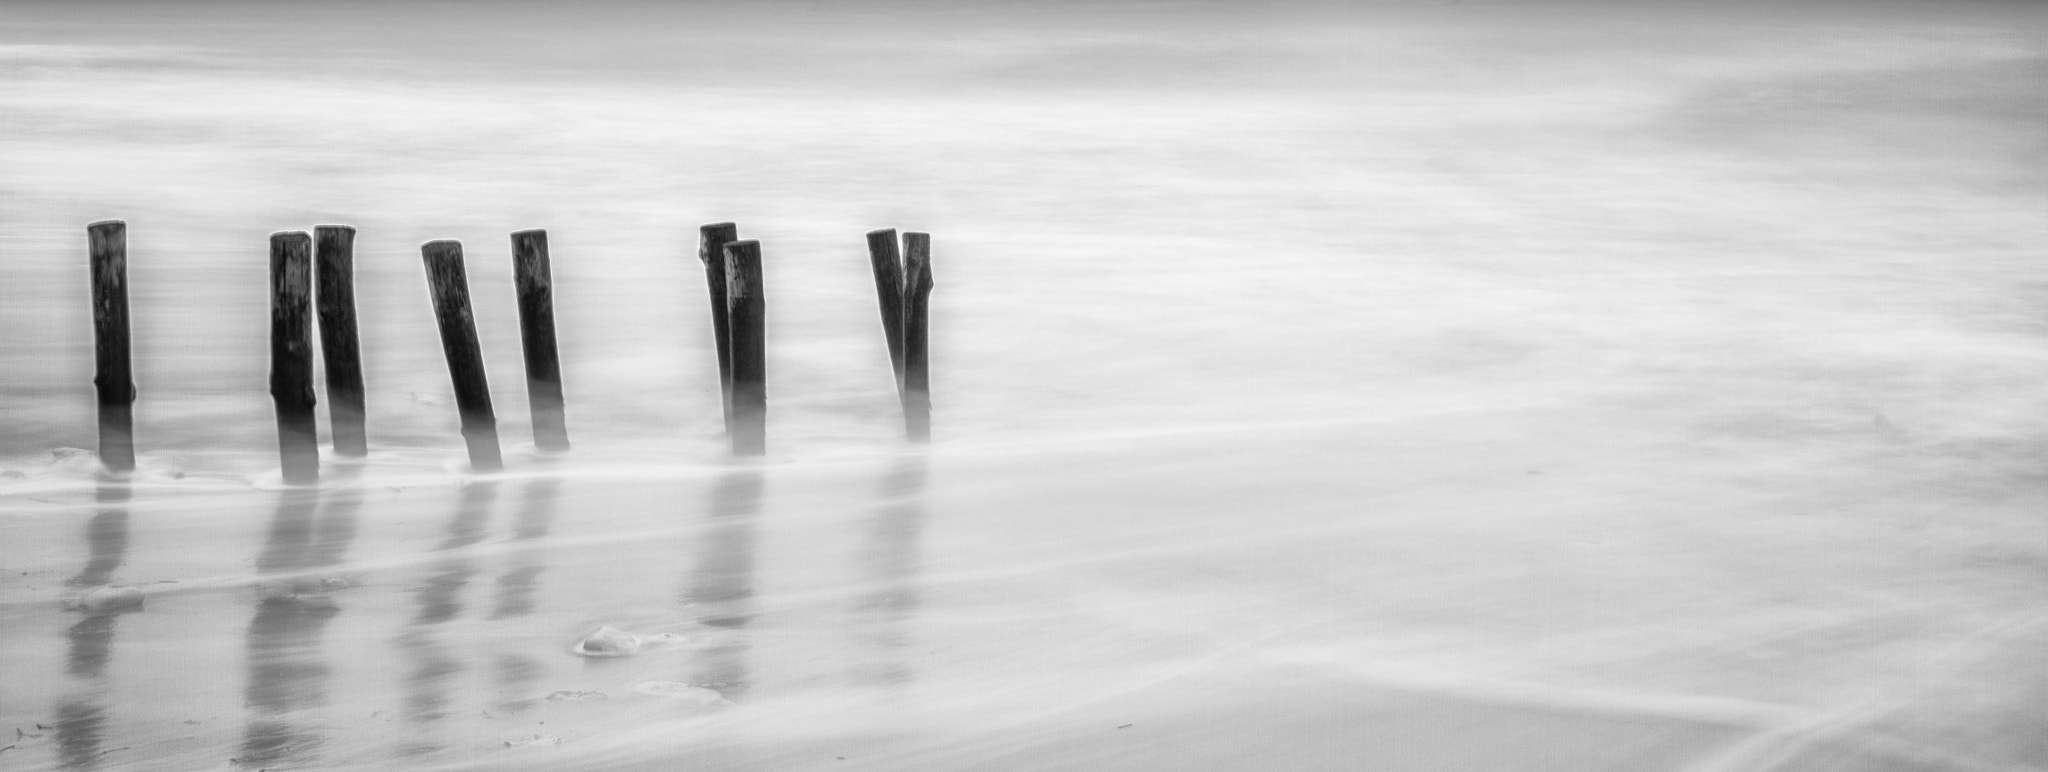 Photograph Be Water II  by Denis Van Linden on 500px